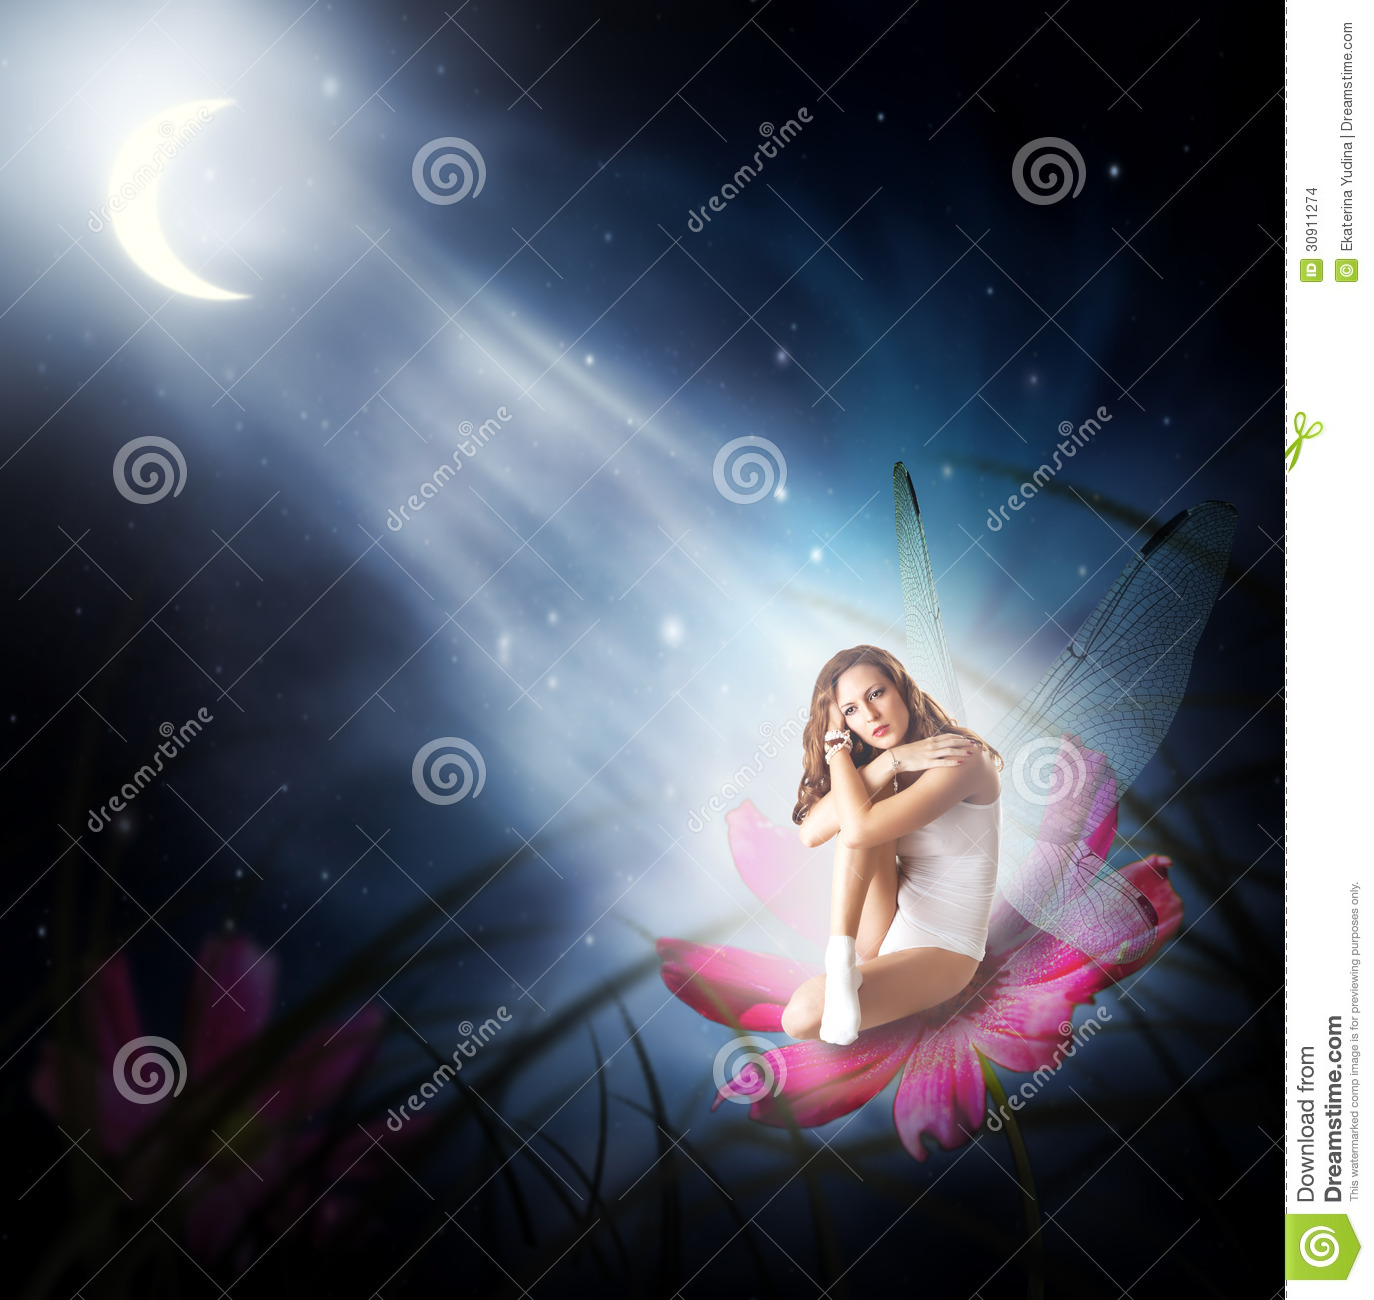 fairy tale moon stock images download 187 photos